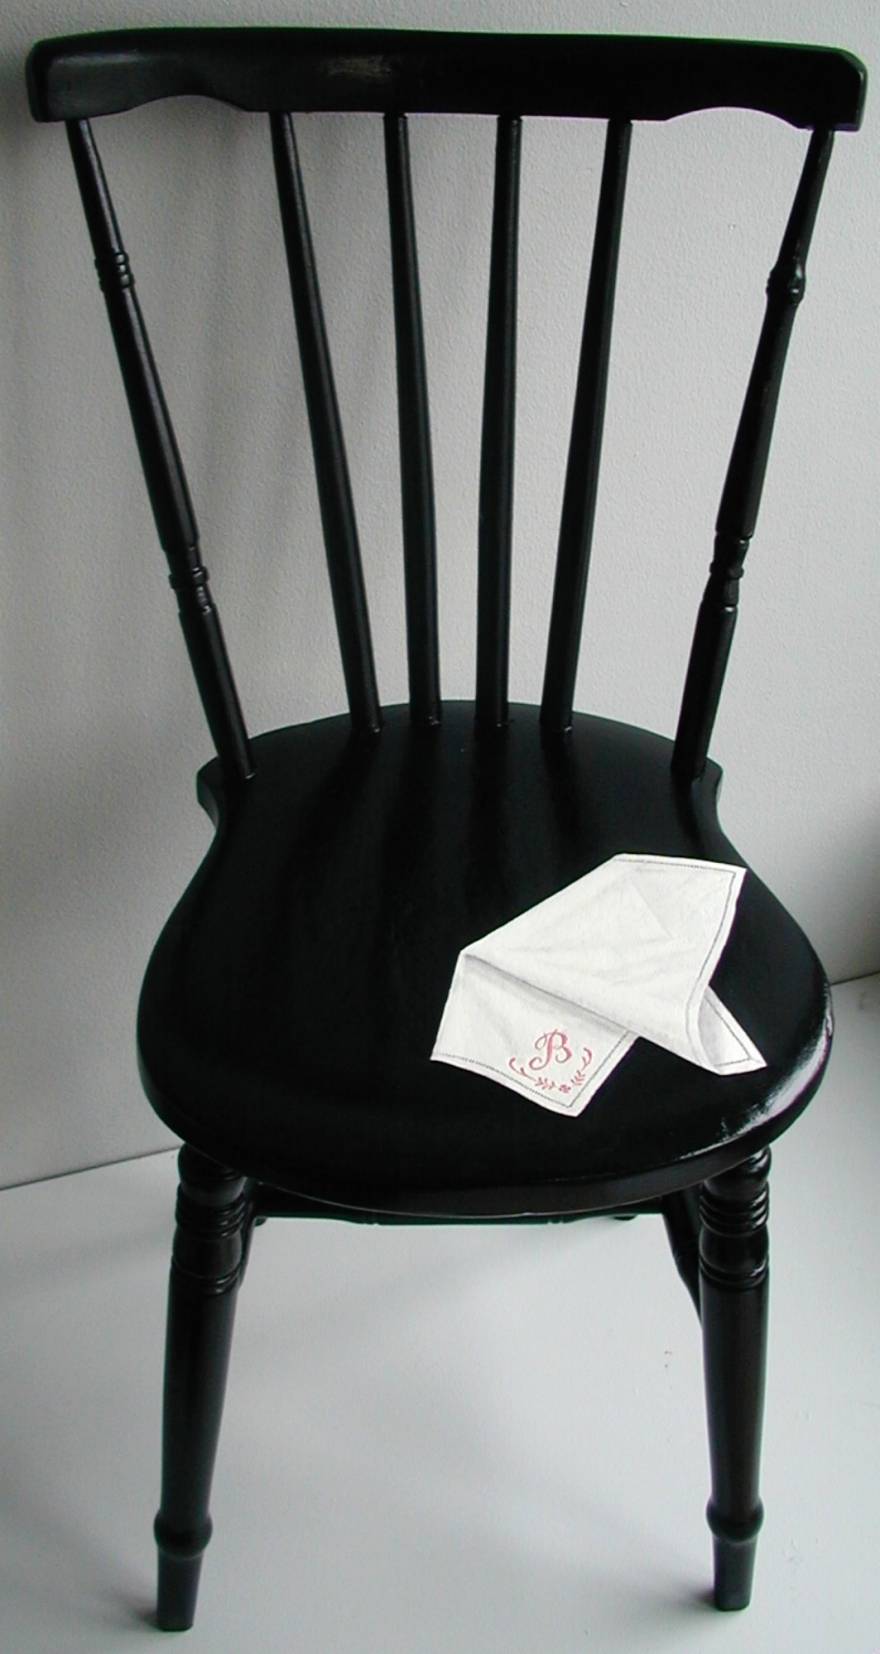 Illussionsmålad stol / Trompe l'œil painted chair